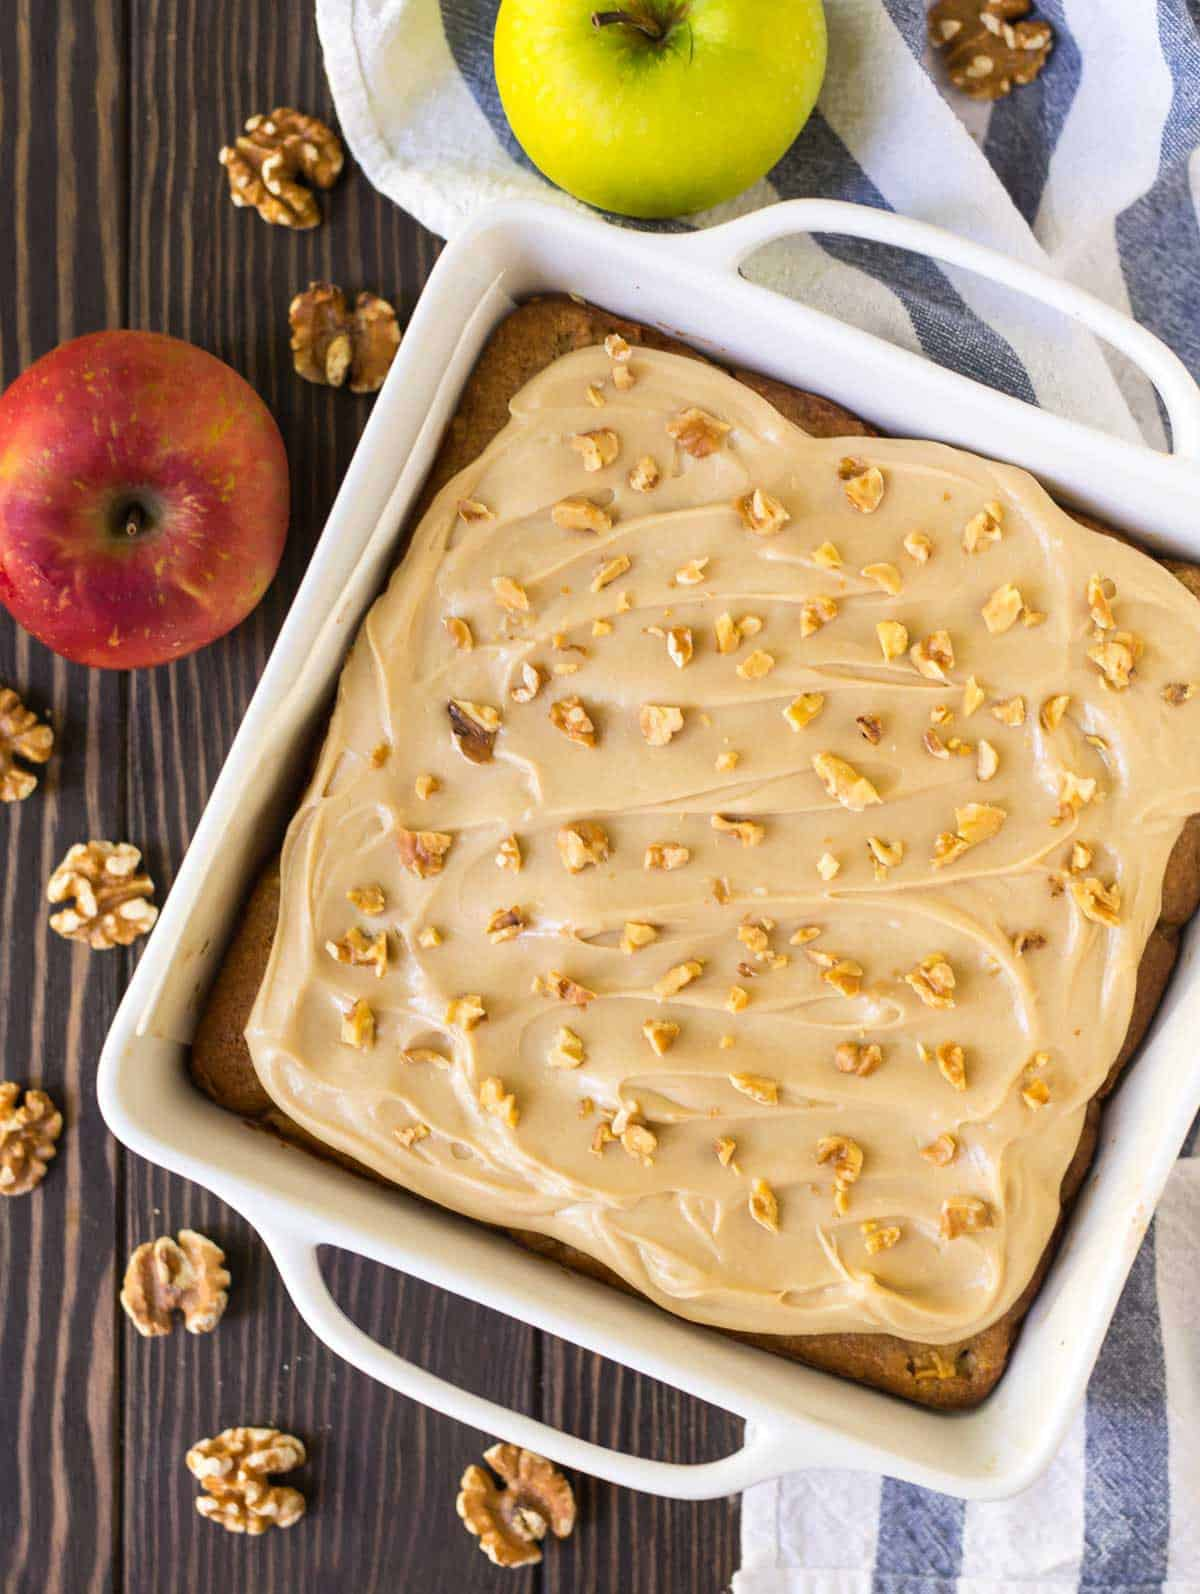 Moist, spiced apple cake with caramel cream cheese frosting and walnuts.